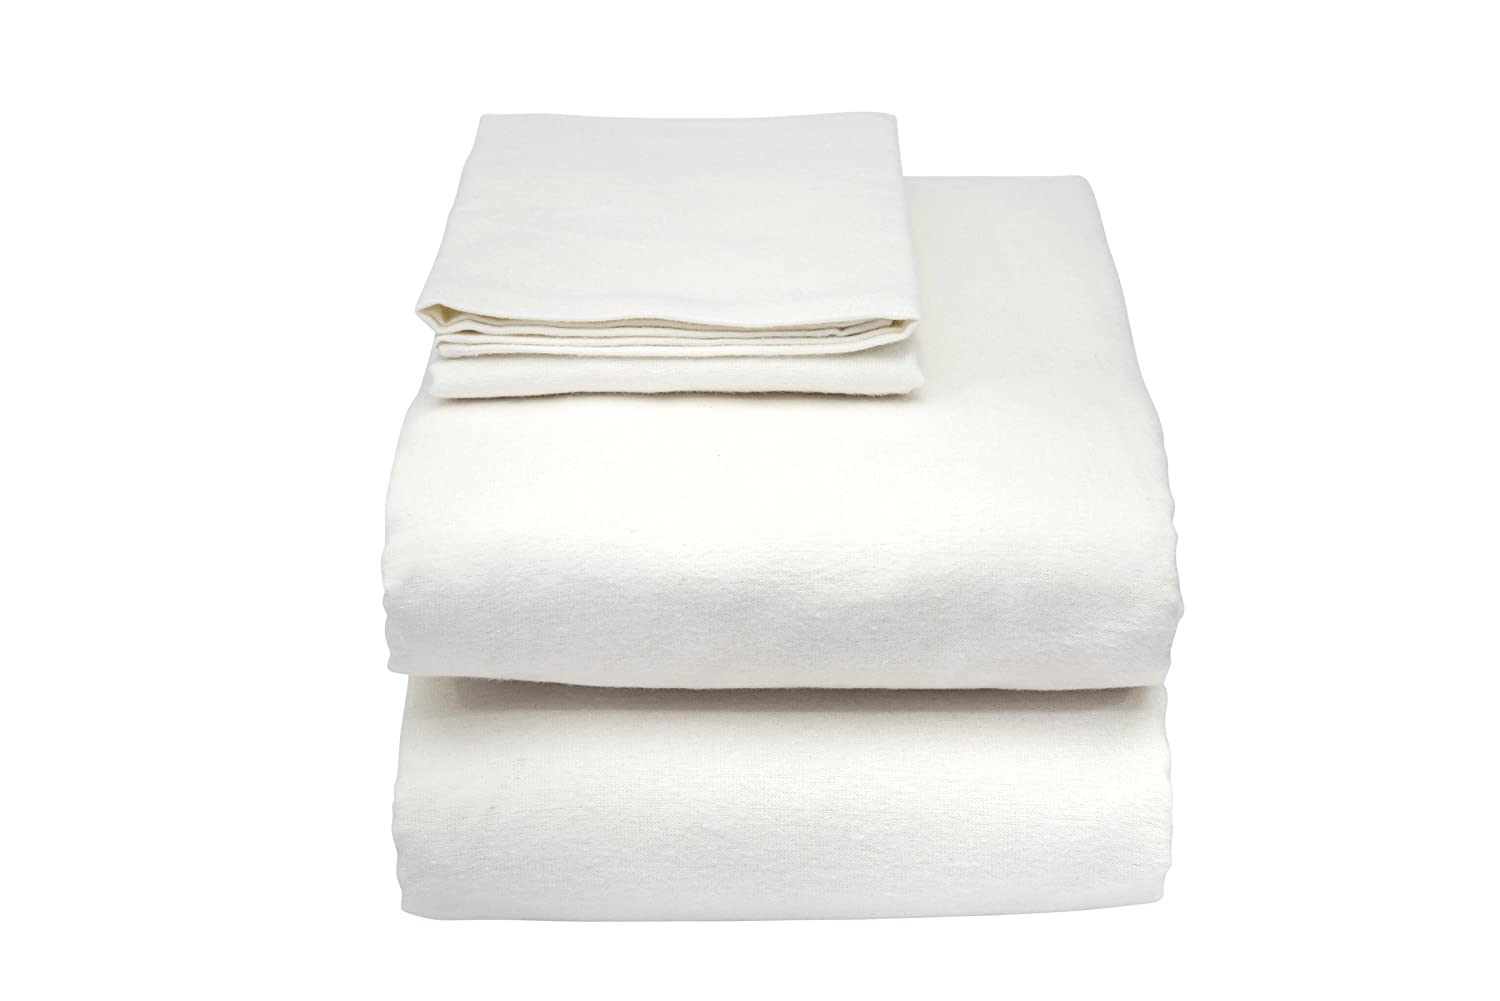 Essential Medical Fitted Hospital Bed Sheet, 36 Inch x 80 Inch x 9 Inch, White